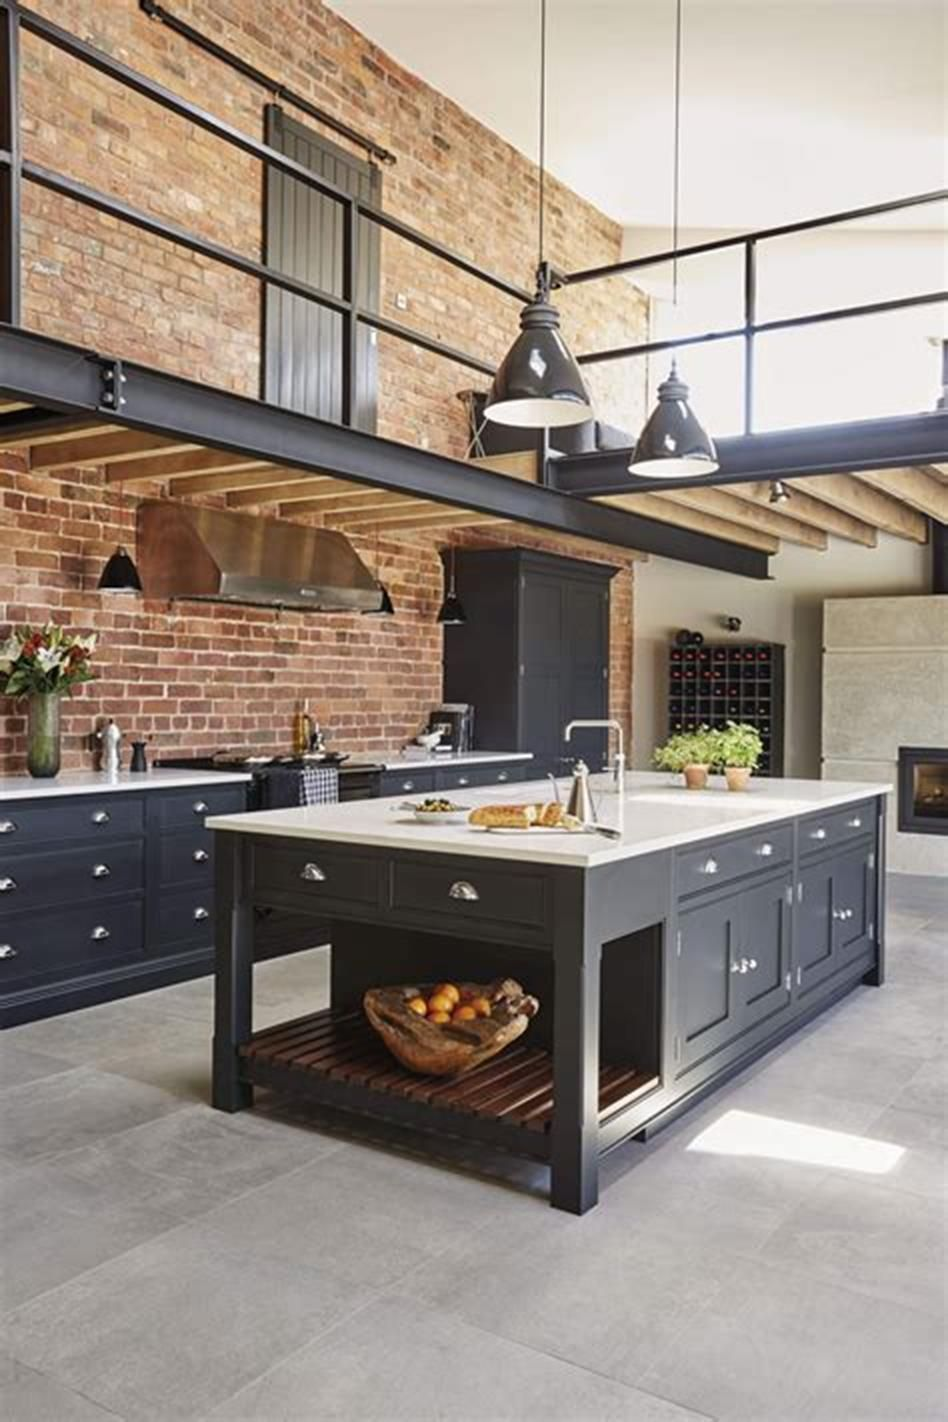 42 Most Popular Industrial Kitchen Design And Decor Ideas Decorecent Loft Kitchen Industrial Kitchen Design Industrial Style Kitchen